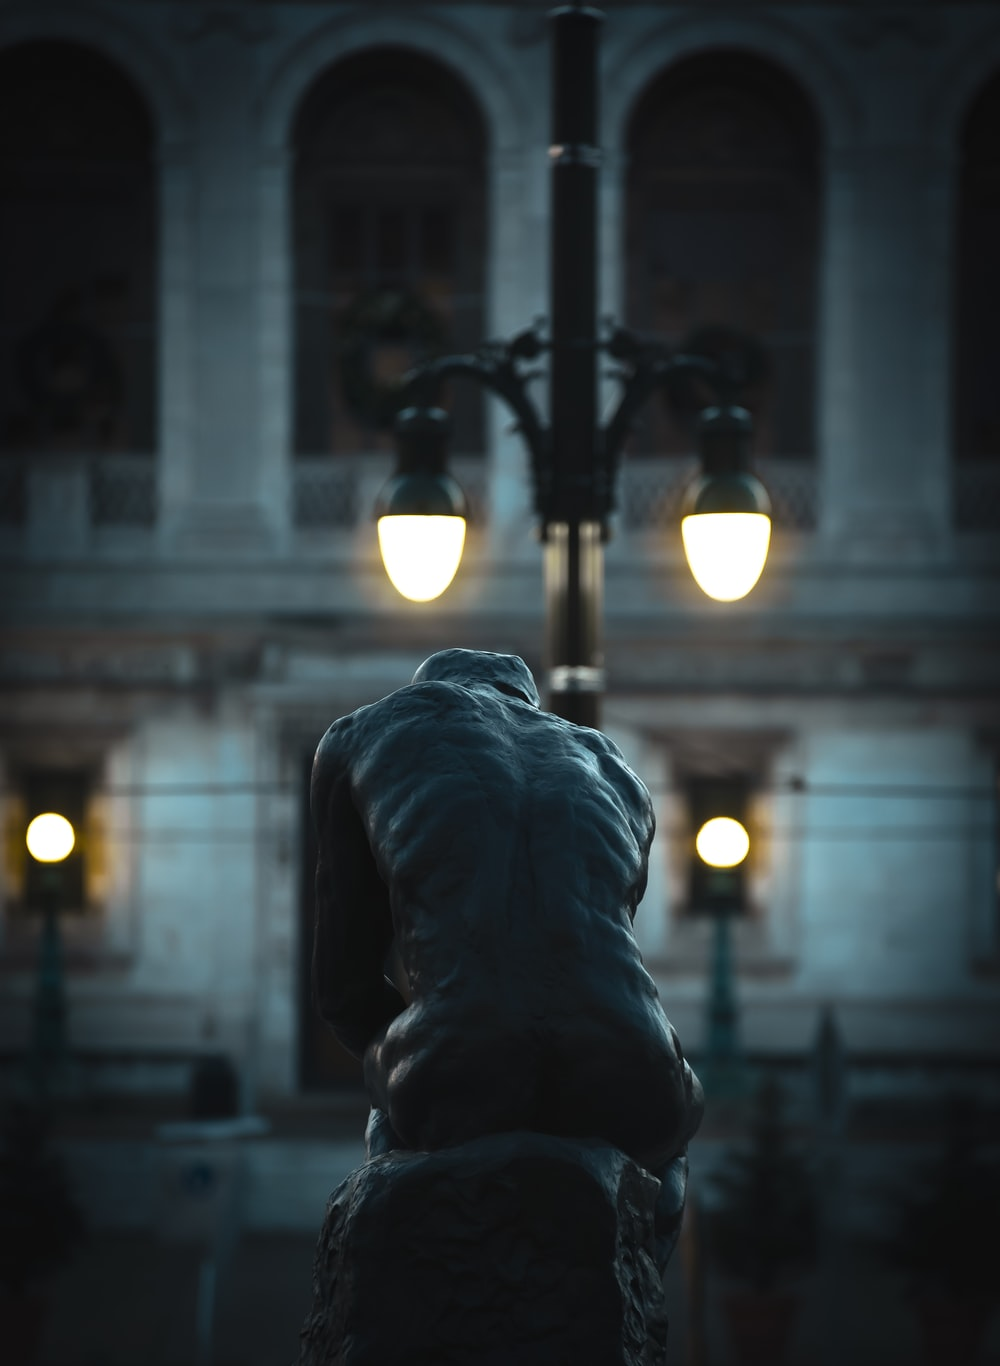 The Thinker statue near lighted street lamp during night time